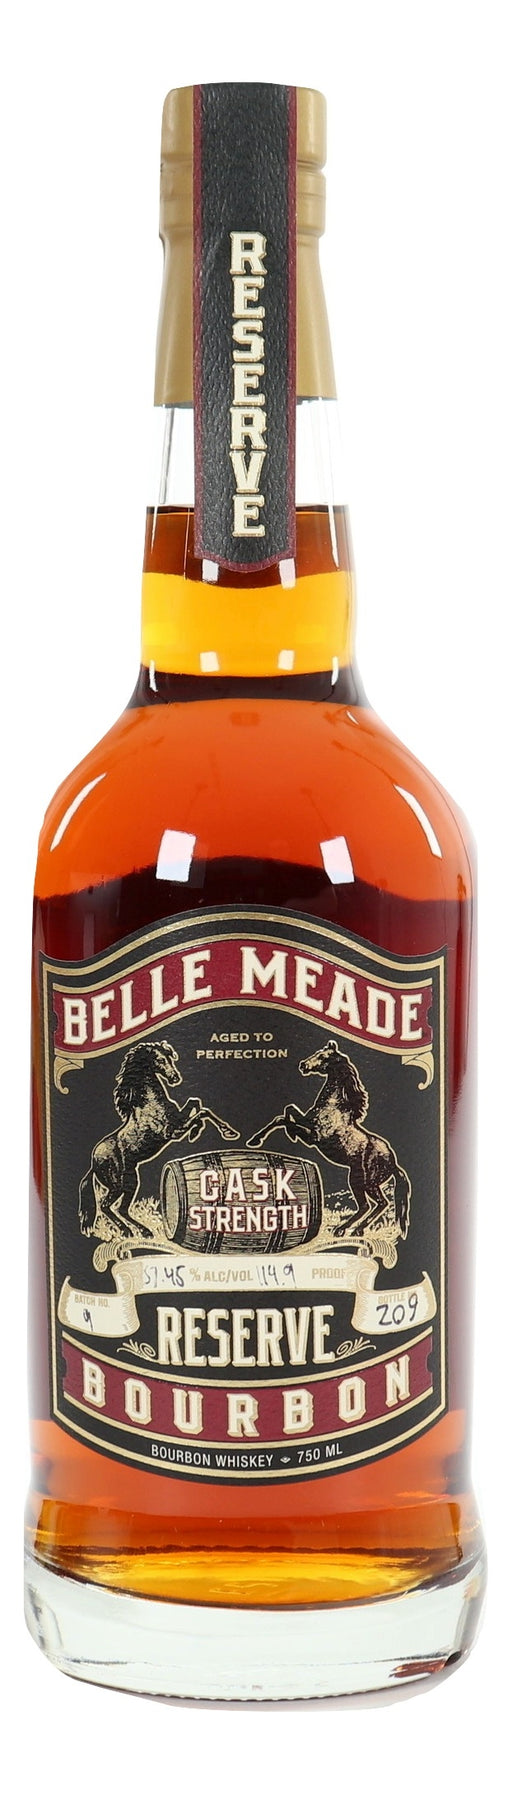 Belle Meade Cask Strength Reserve Bourbon Batch 9 - NativeSpiritsOnline